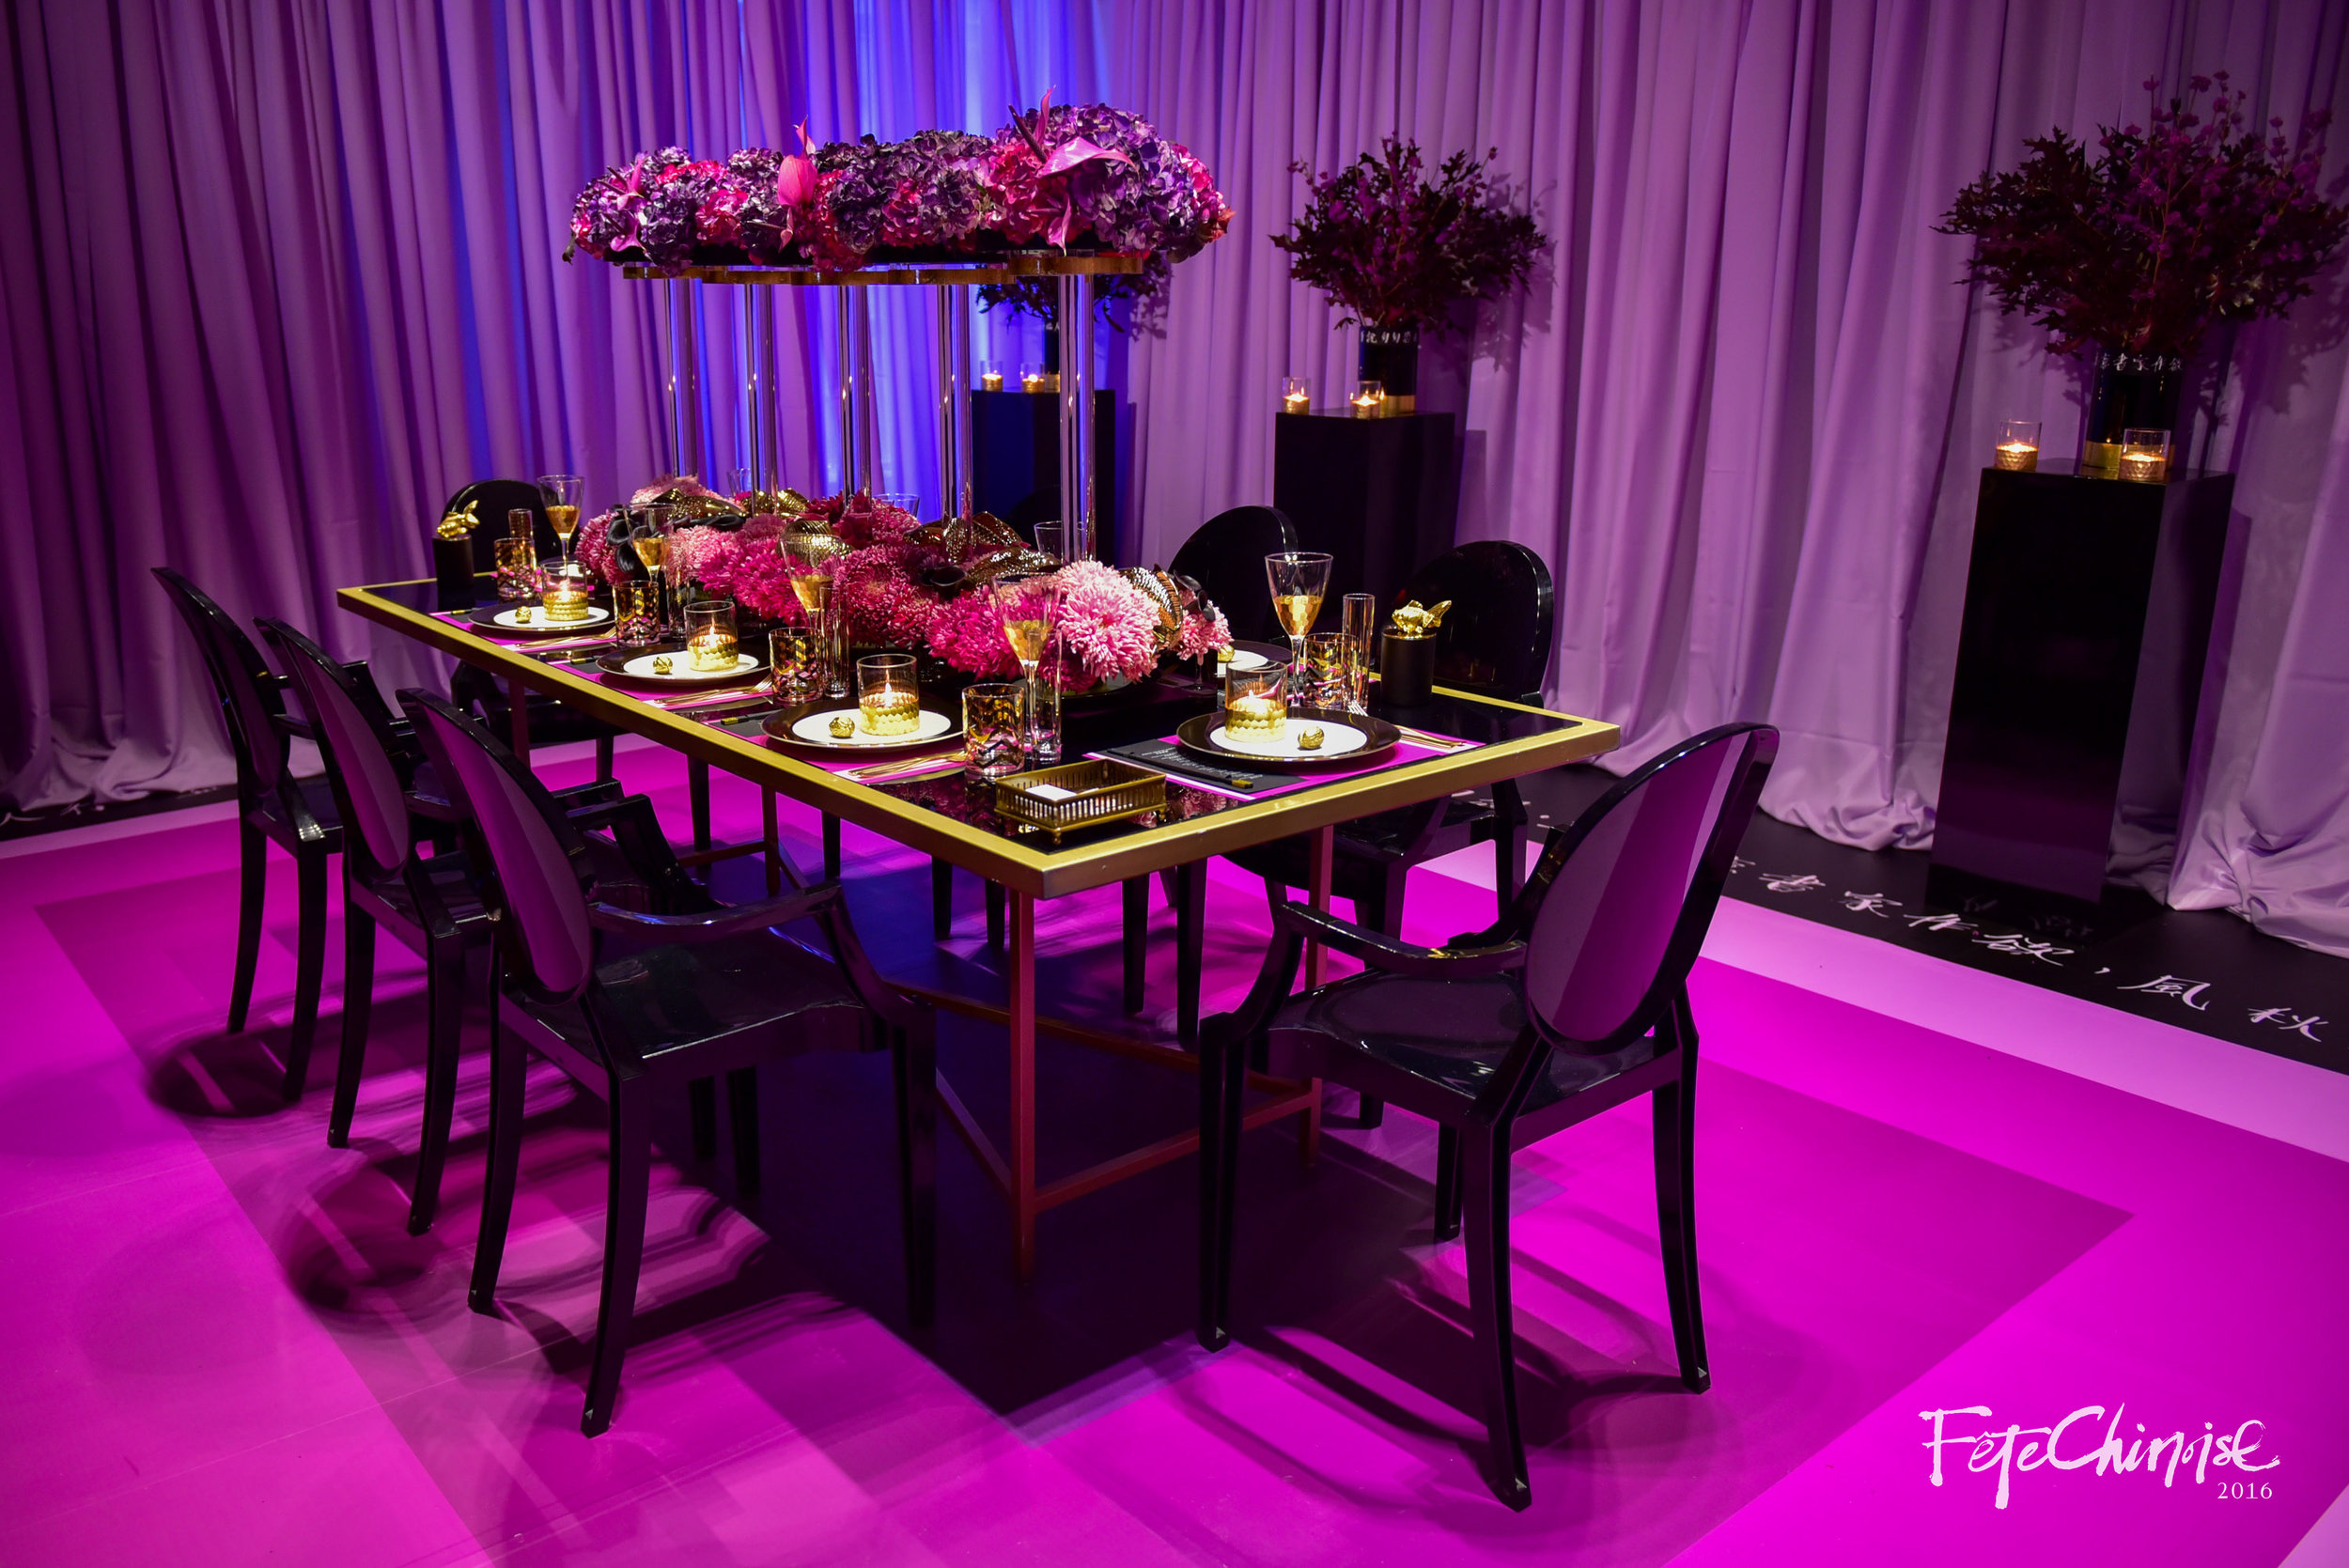 The Winter Solstice Dinner Party, designed by Fiori Floral and Spectacular Spectacular, featuring stationery and Chinese calligraphy by PALETTERA. Candles on table top with gold fish topper by Eddie Leung.